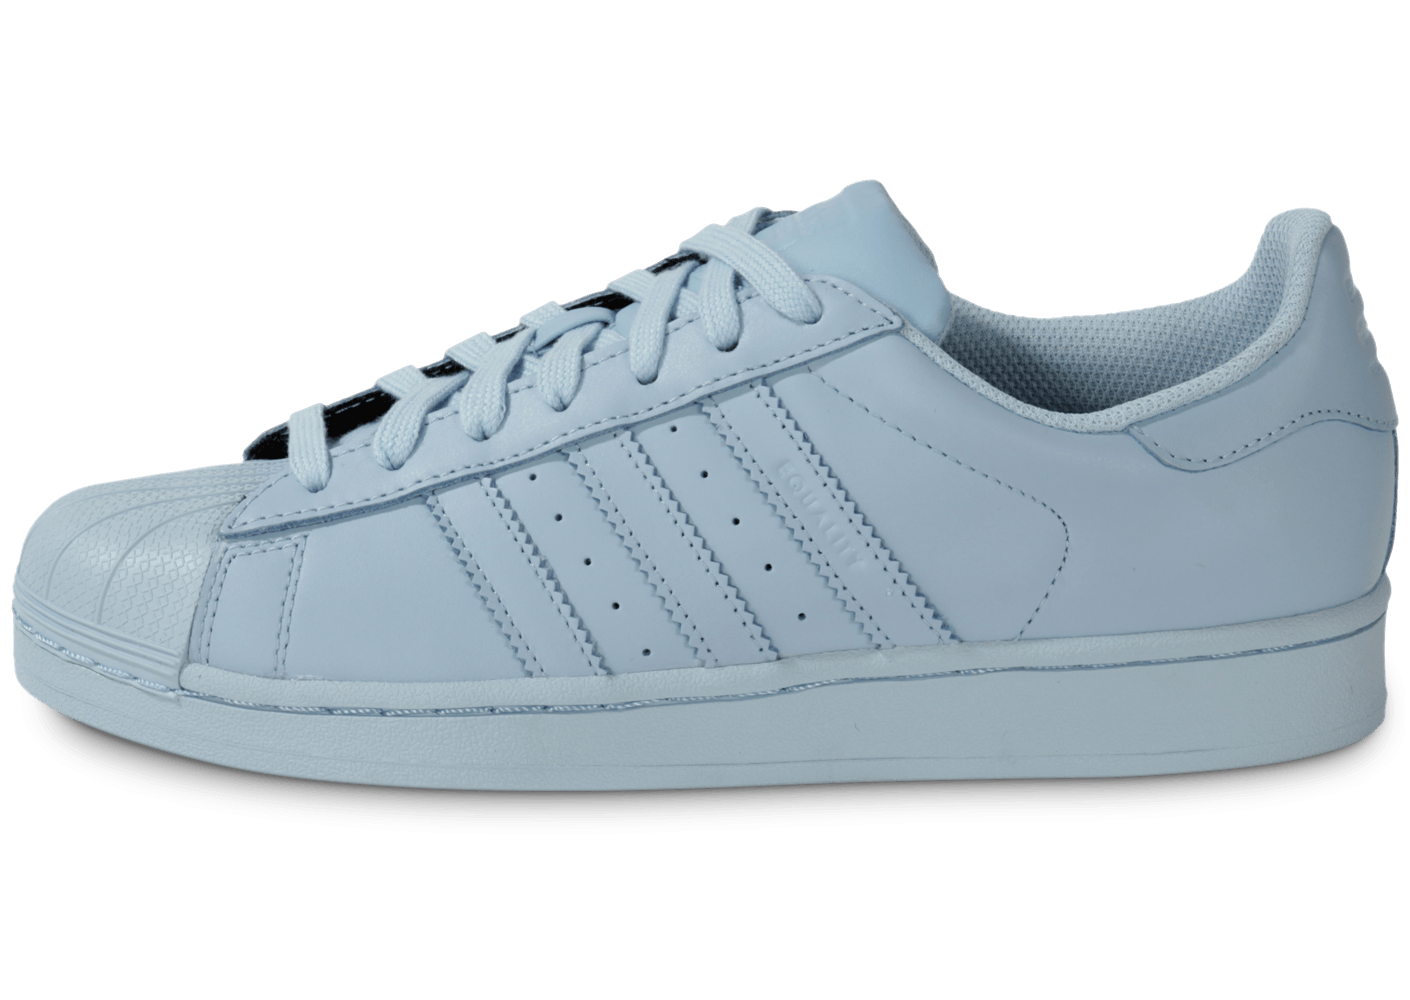 adidas superstar supercolor bleu ciel chaussures homme chausport. Black Bedroom Furniture Sets. Home Design Ideas